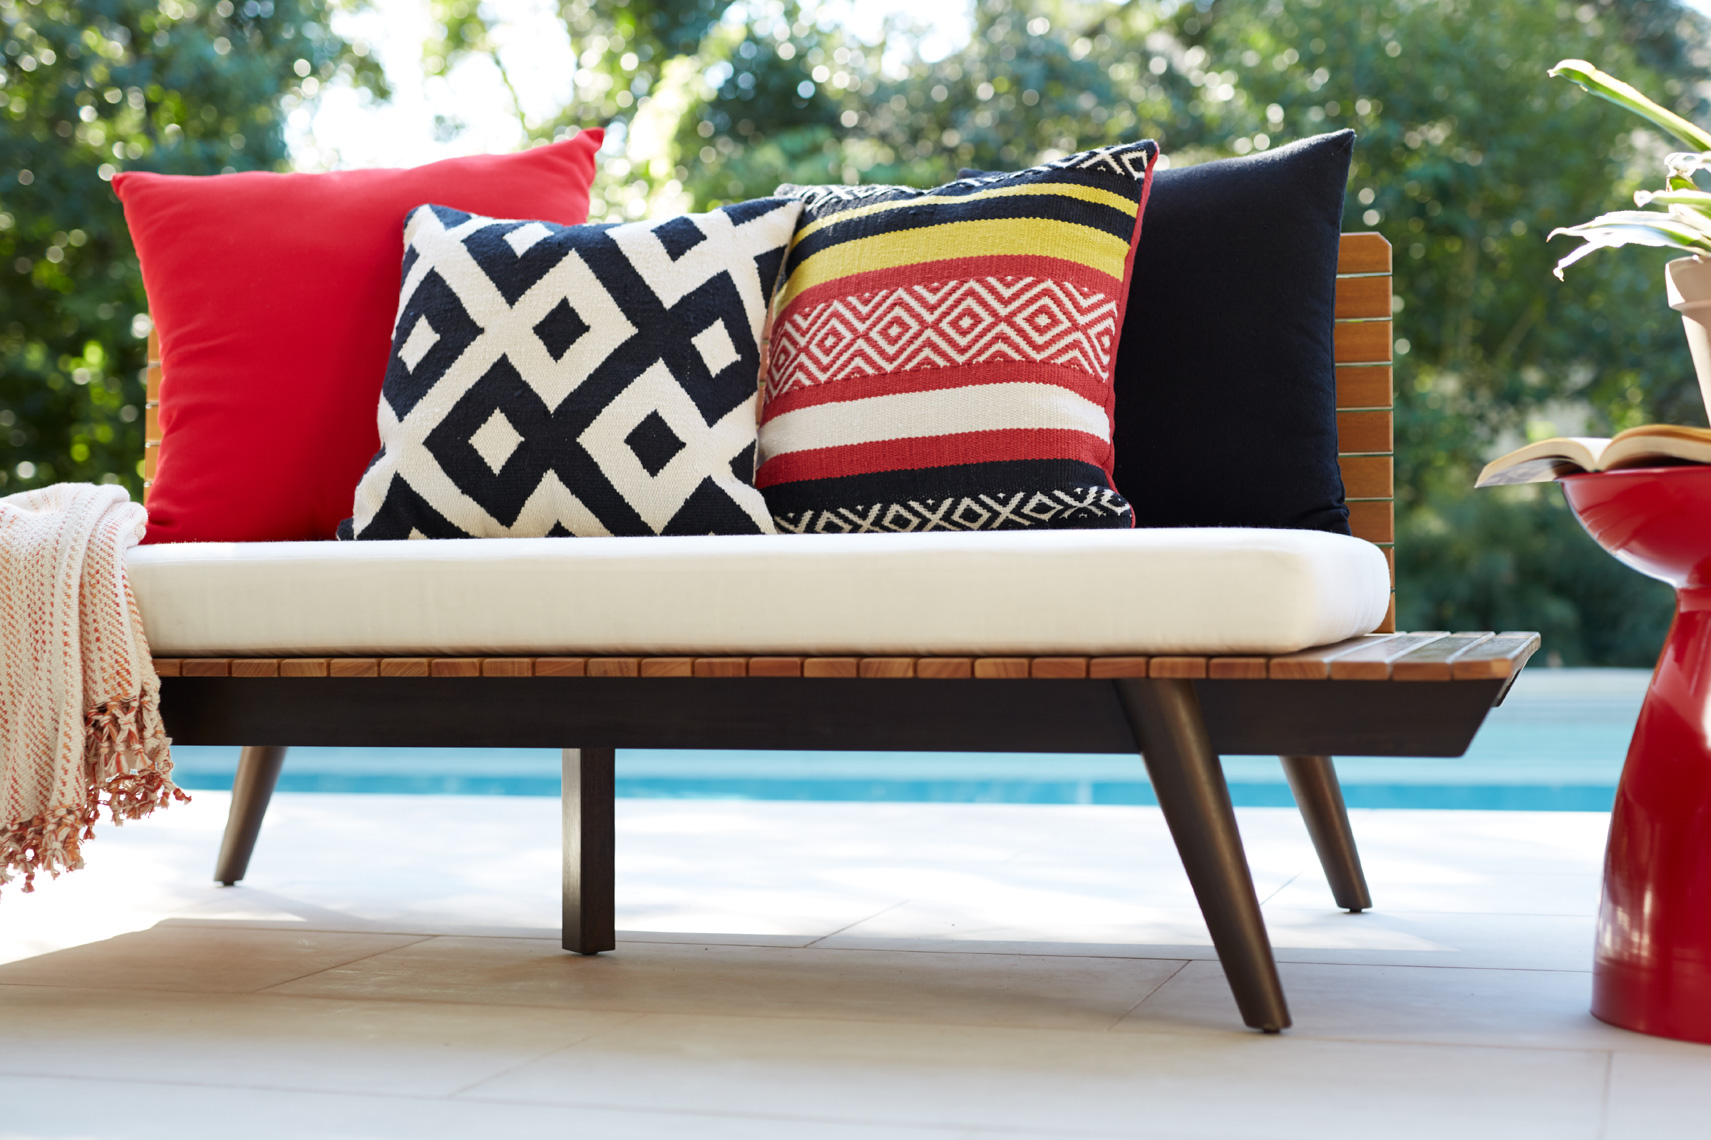 chic poolside bench with white cushion and 4 patterned pillows